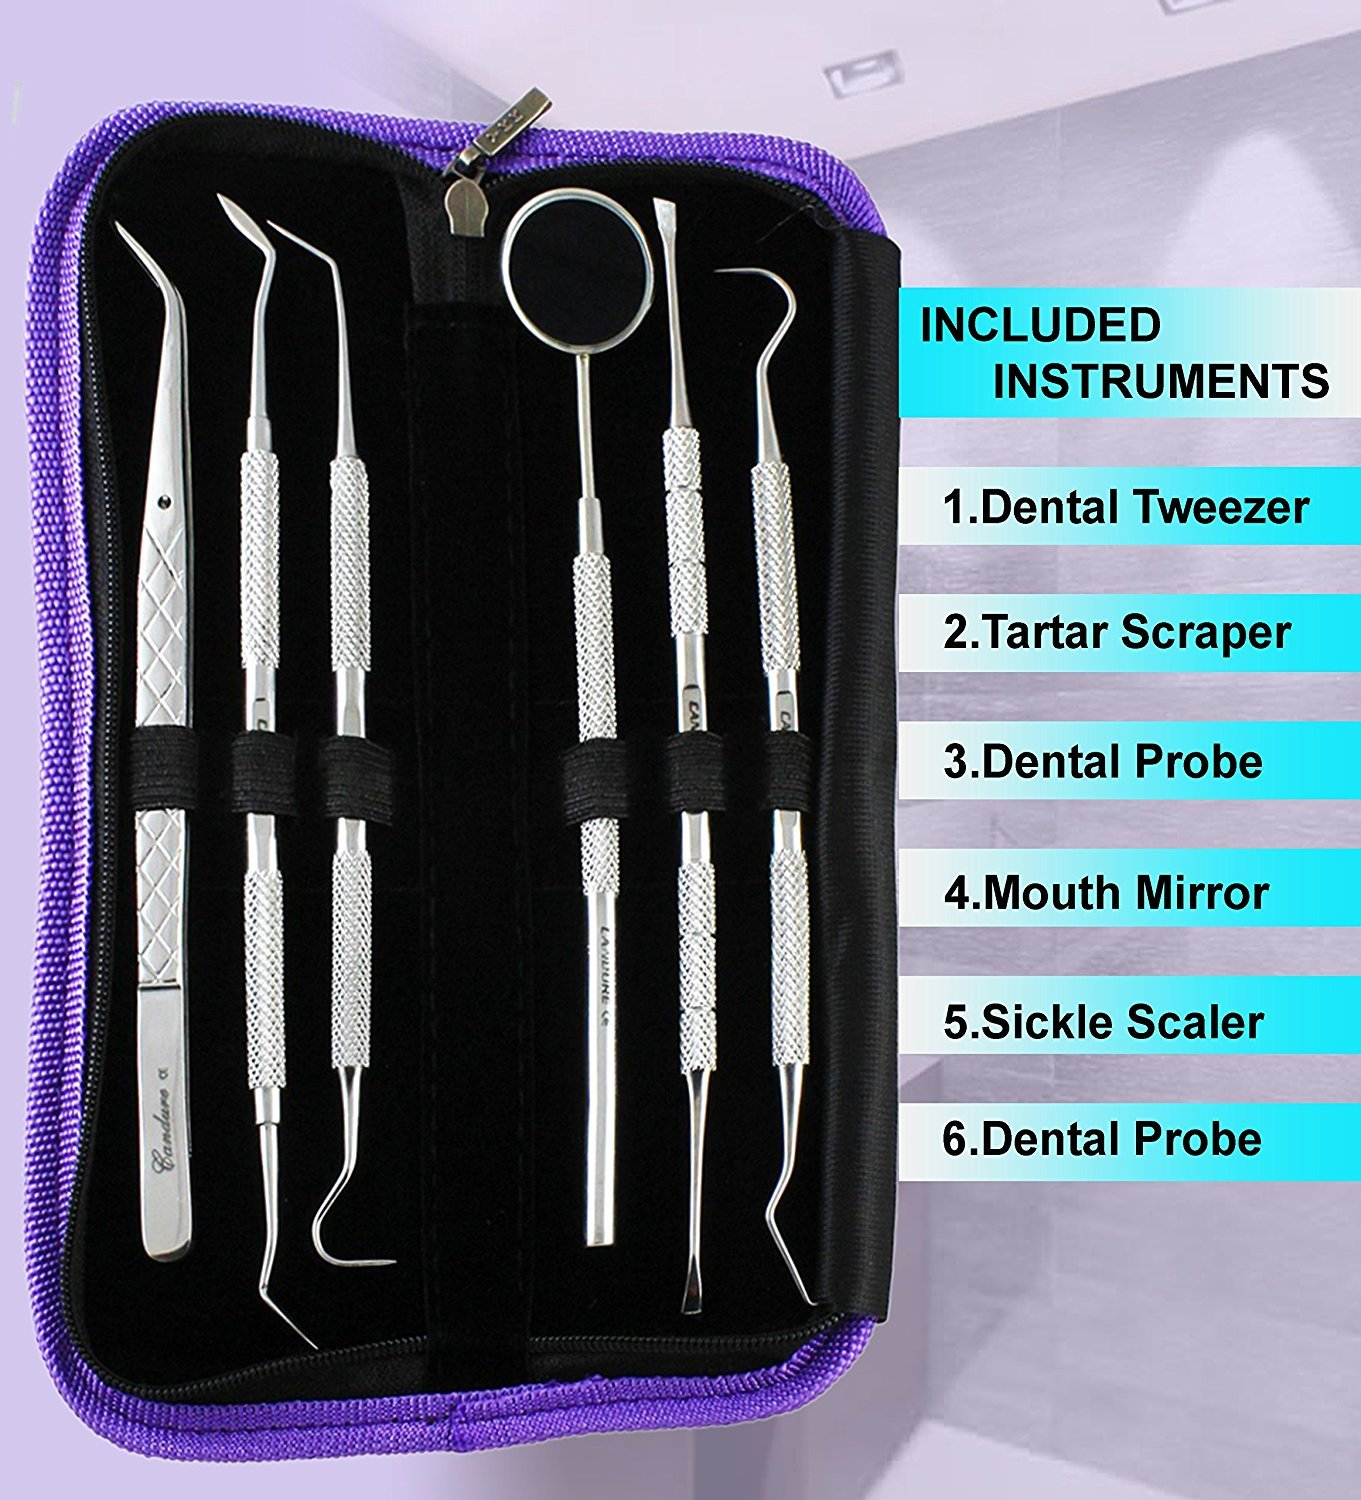 Teeth Whitening Dental Floss Dental Hygiene Kit Calculus and Plaque Remover Set Dentist Pick Tools Scaler Dental Mirror Tweezers 5 Pieces Dental Set (6 Pcs) by Candure (Image #2)